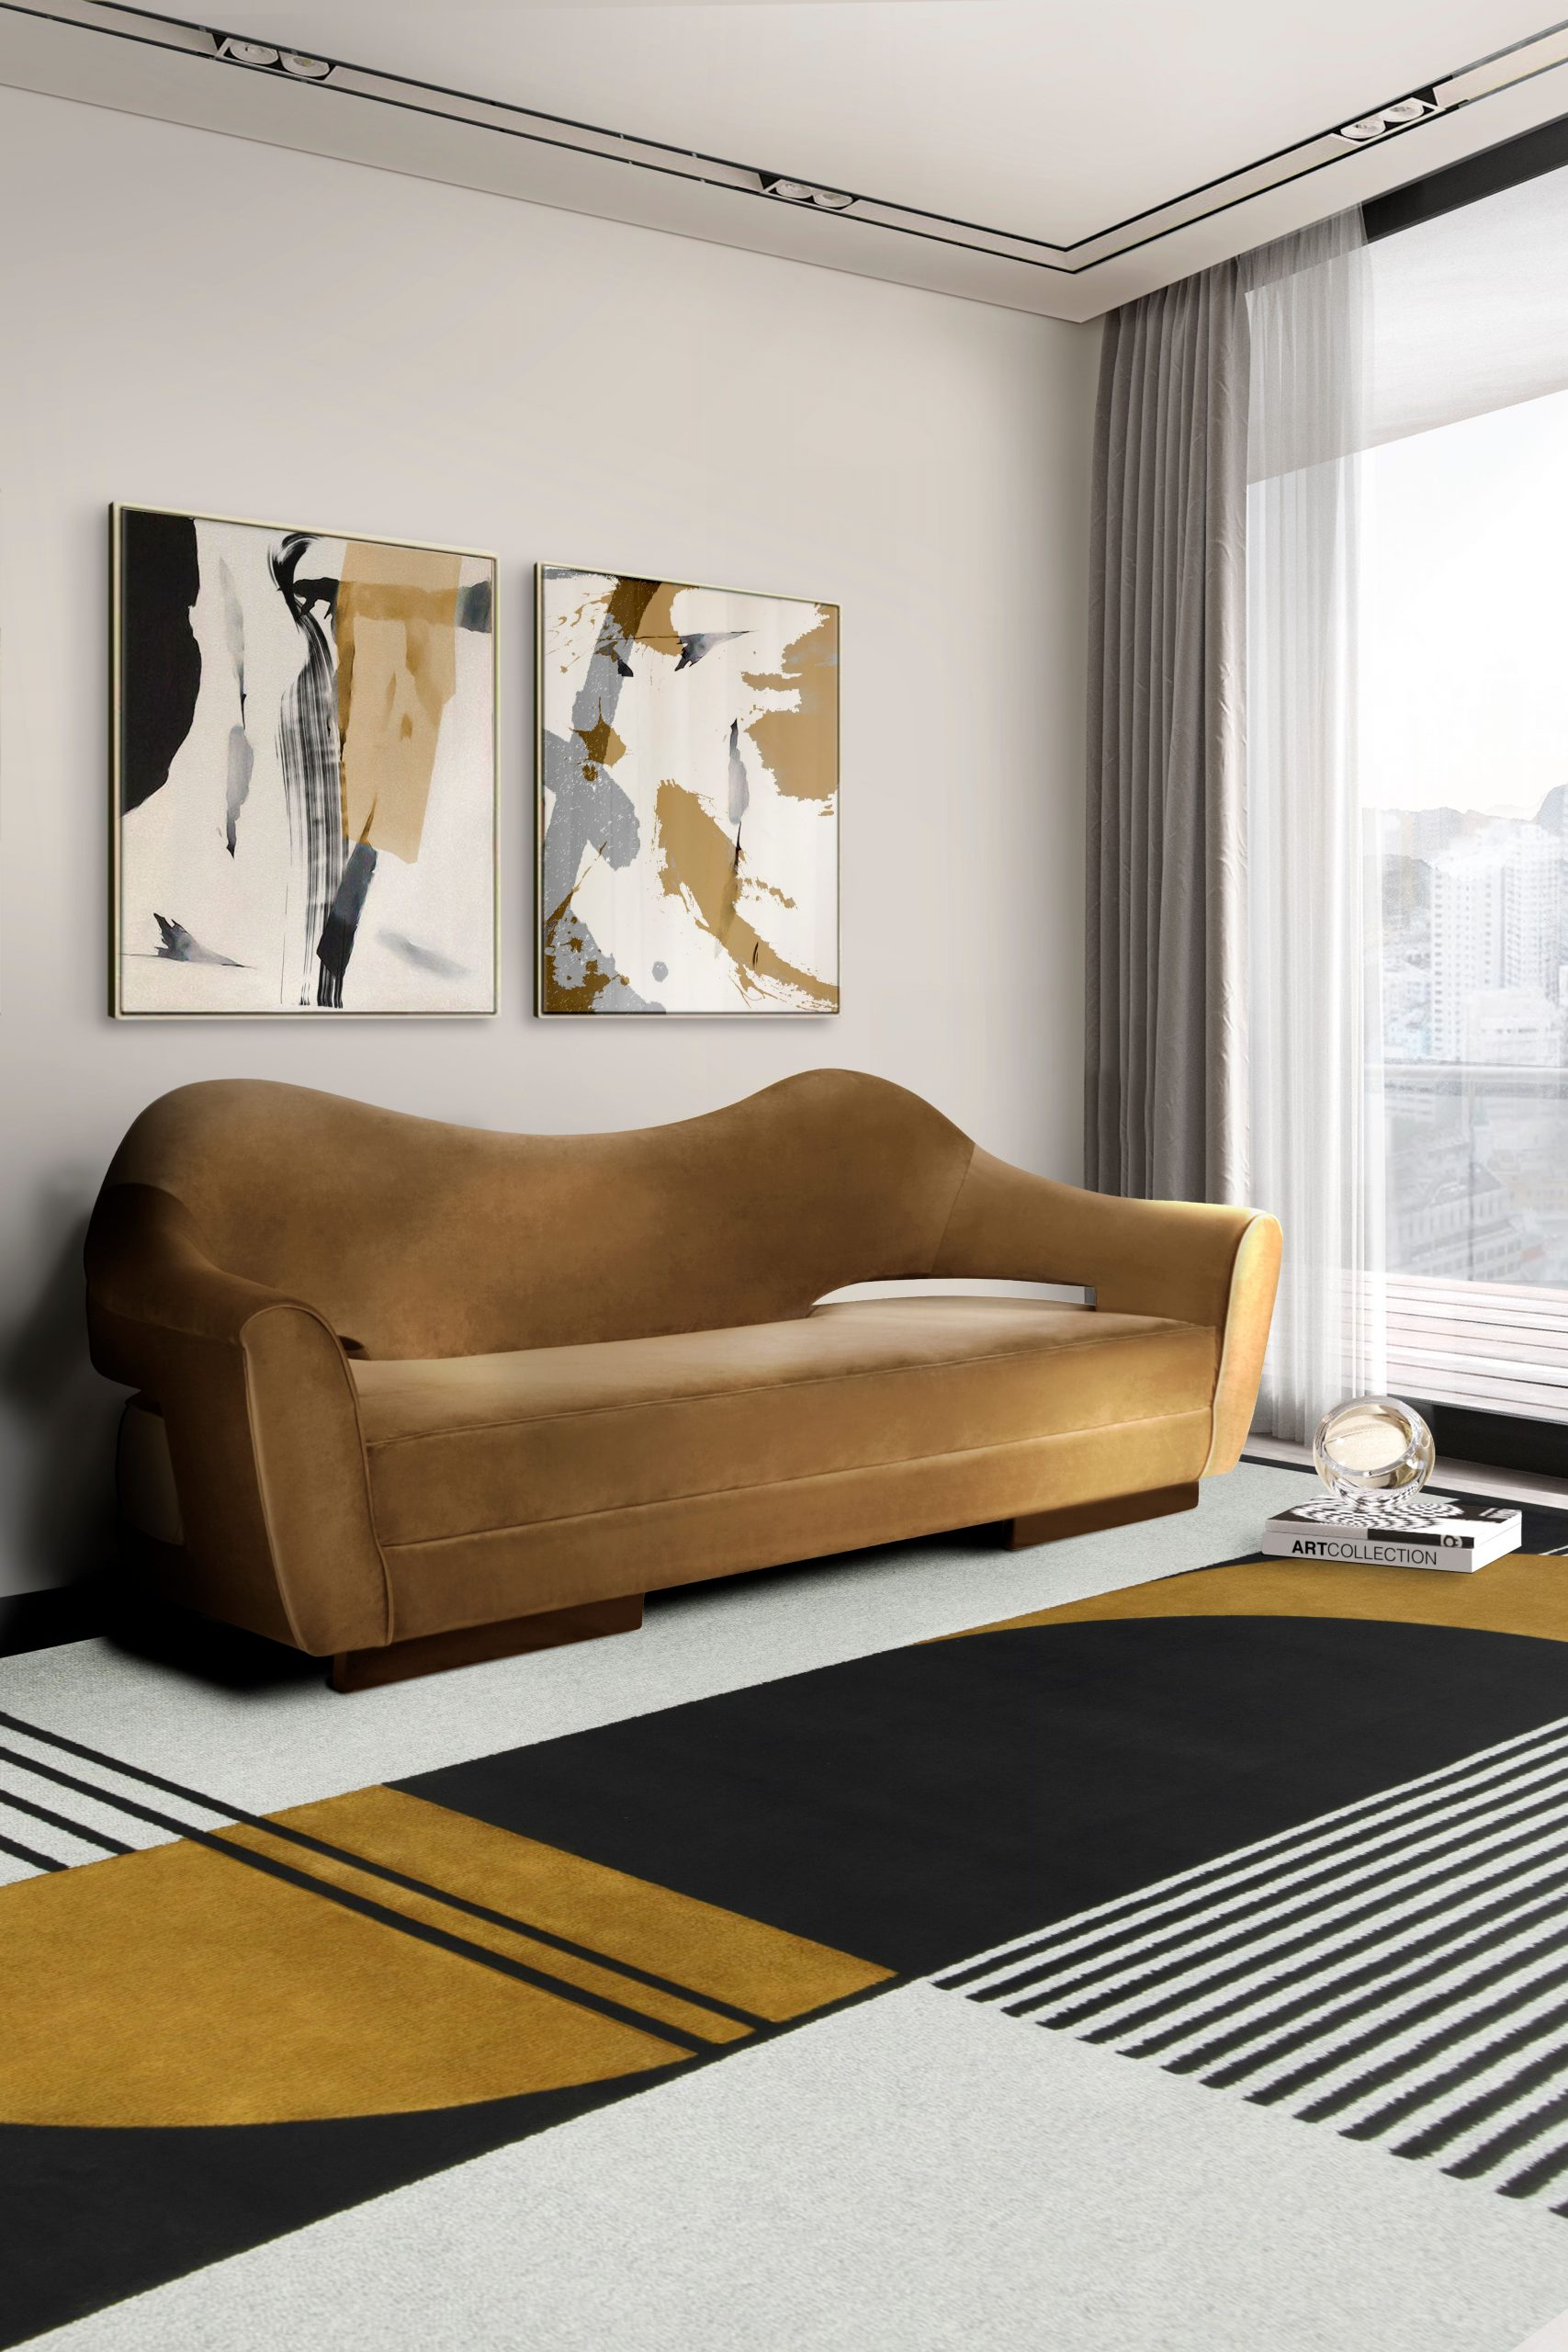 MODERN CONTEMPORARY LIVING ROOM WITH ANTELOPE COLORFUL RUG